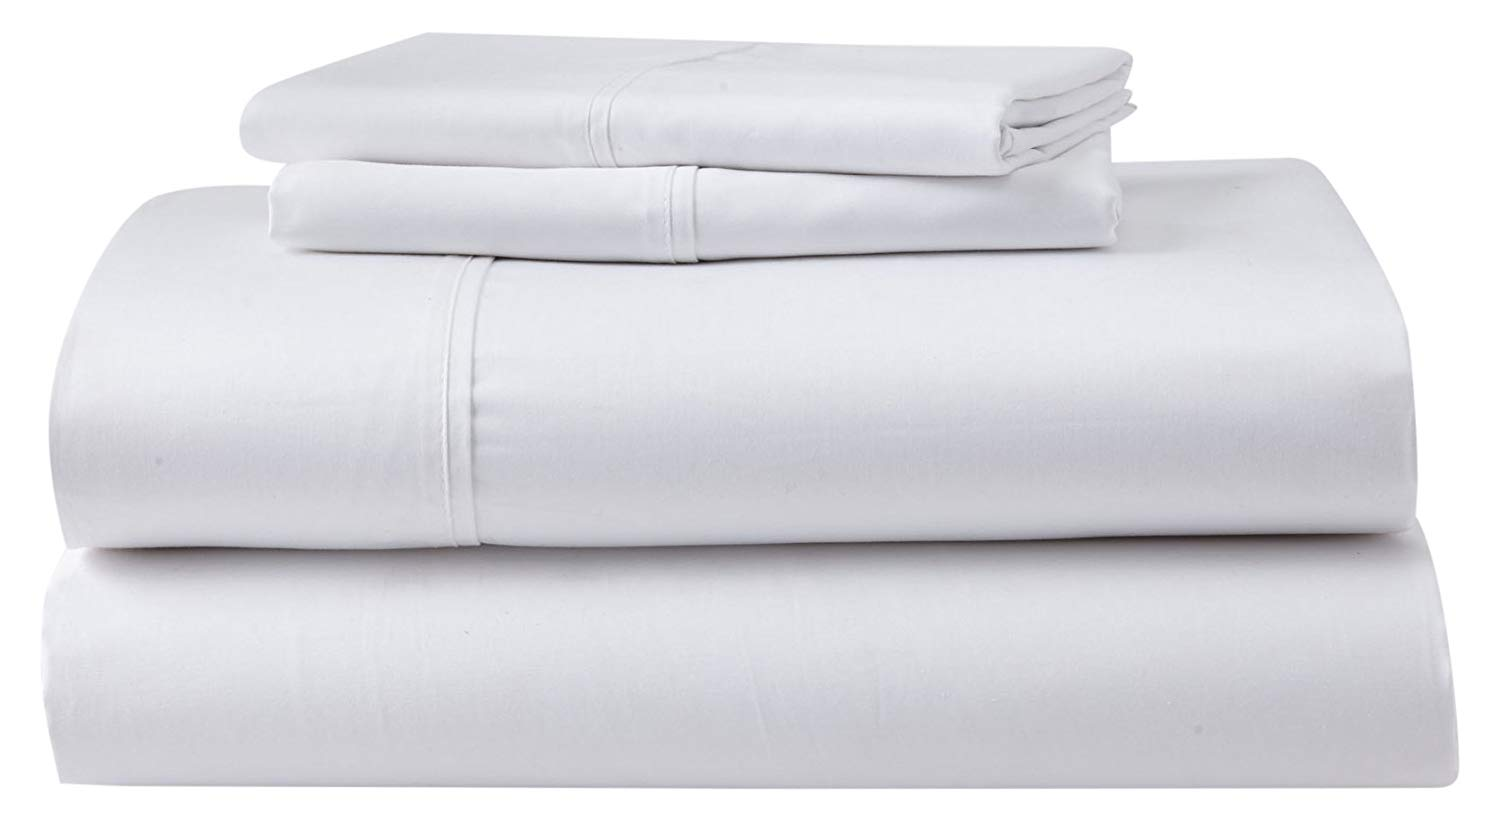 GhostBed Microfiber vs. Cotton Sheets Review by www.snoremagazine.com